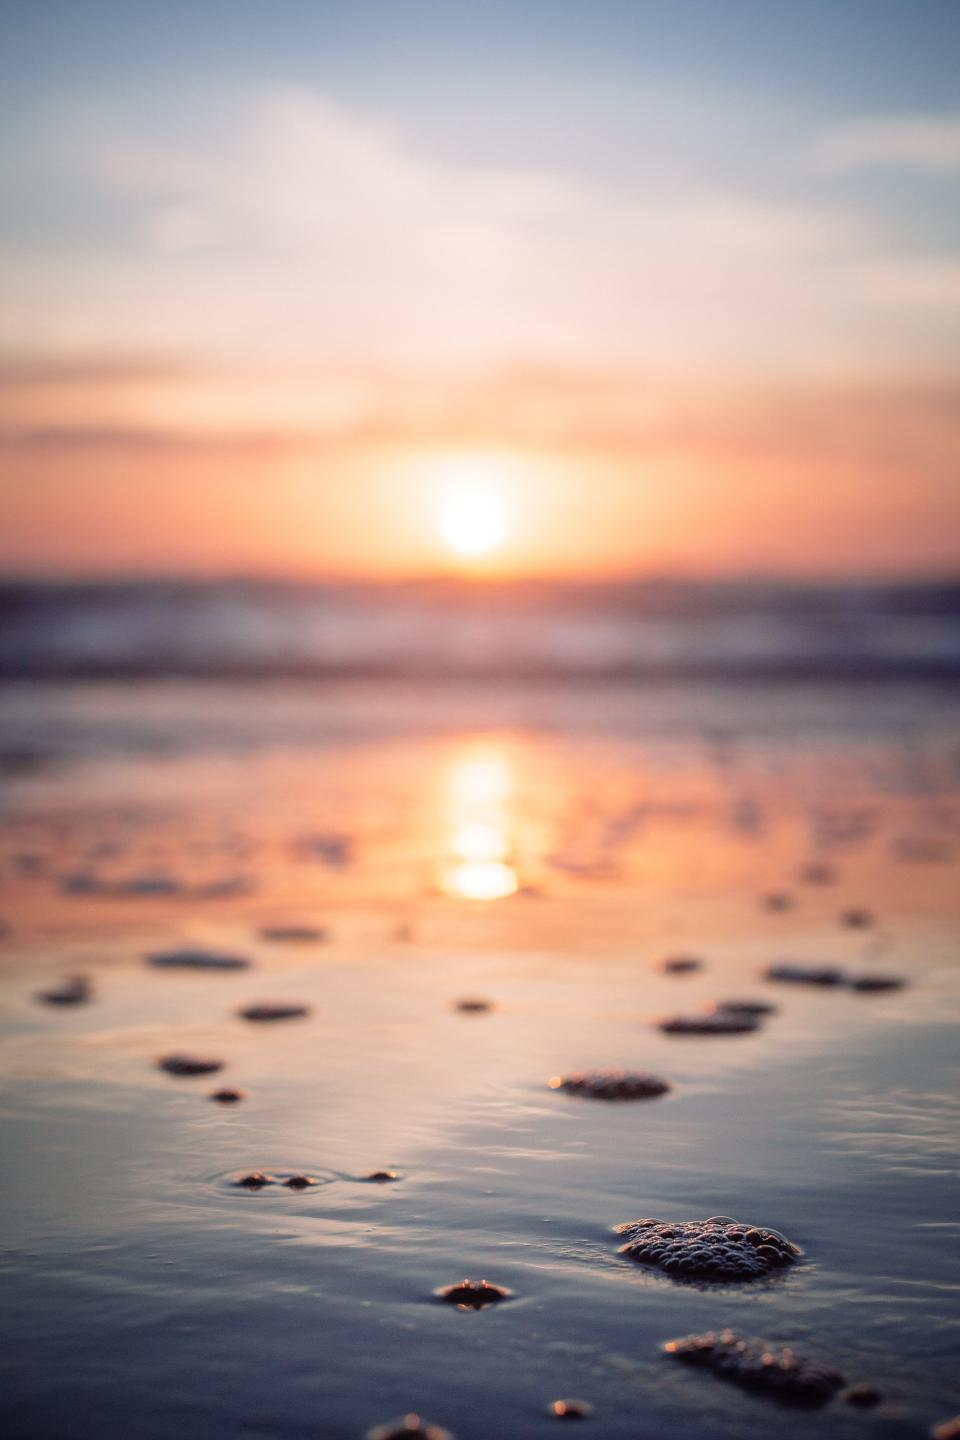 sea ocean water wave nature sunset blur reflection